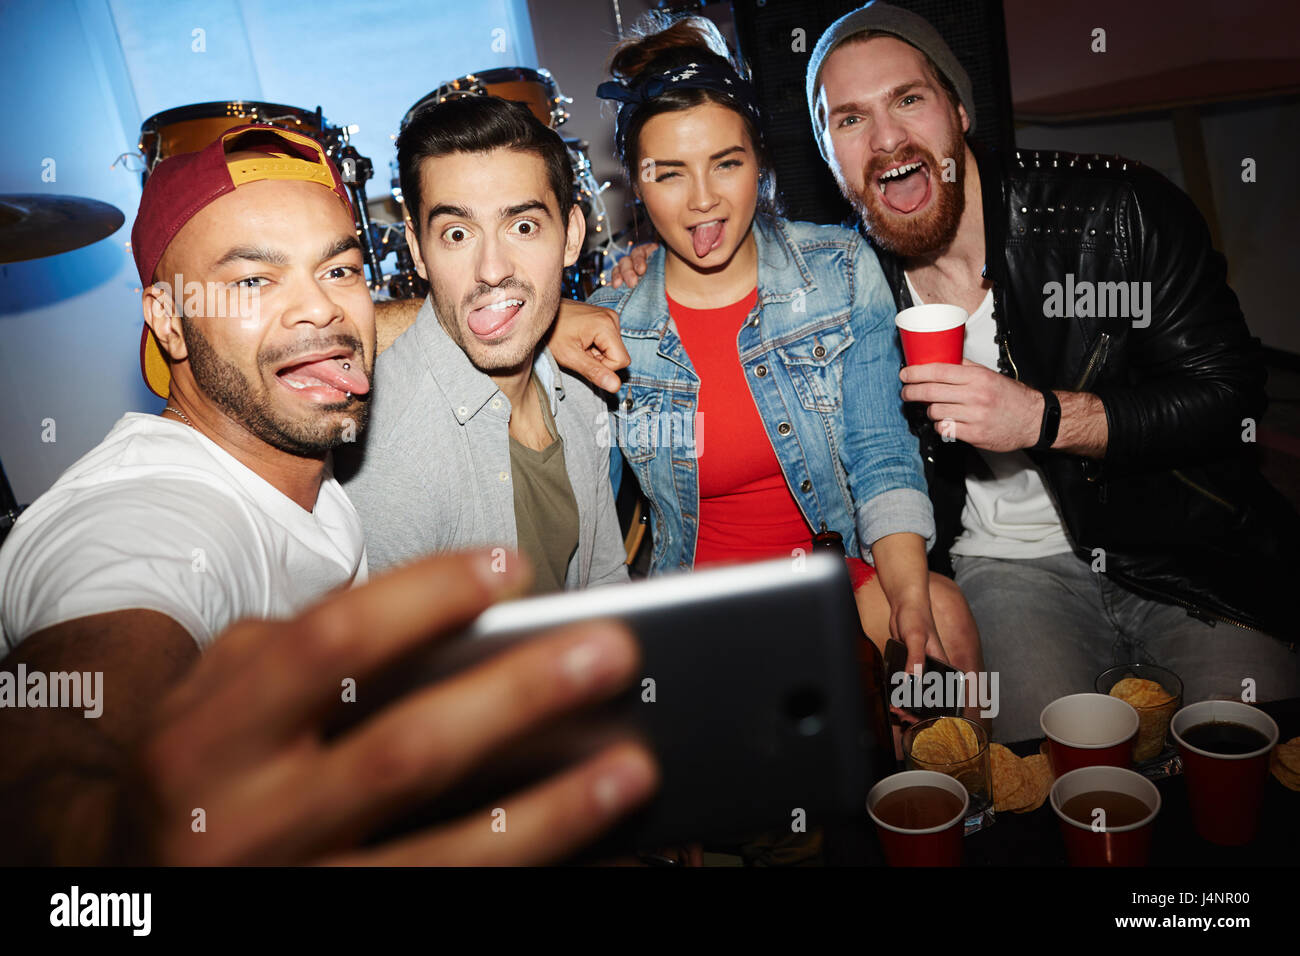 Group of modern young people chilling at night club party, posing for selfie photo, grimacing and having fun - Stock Image